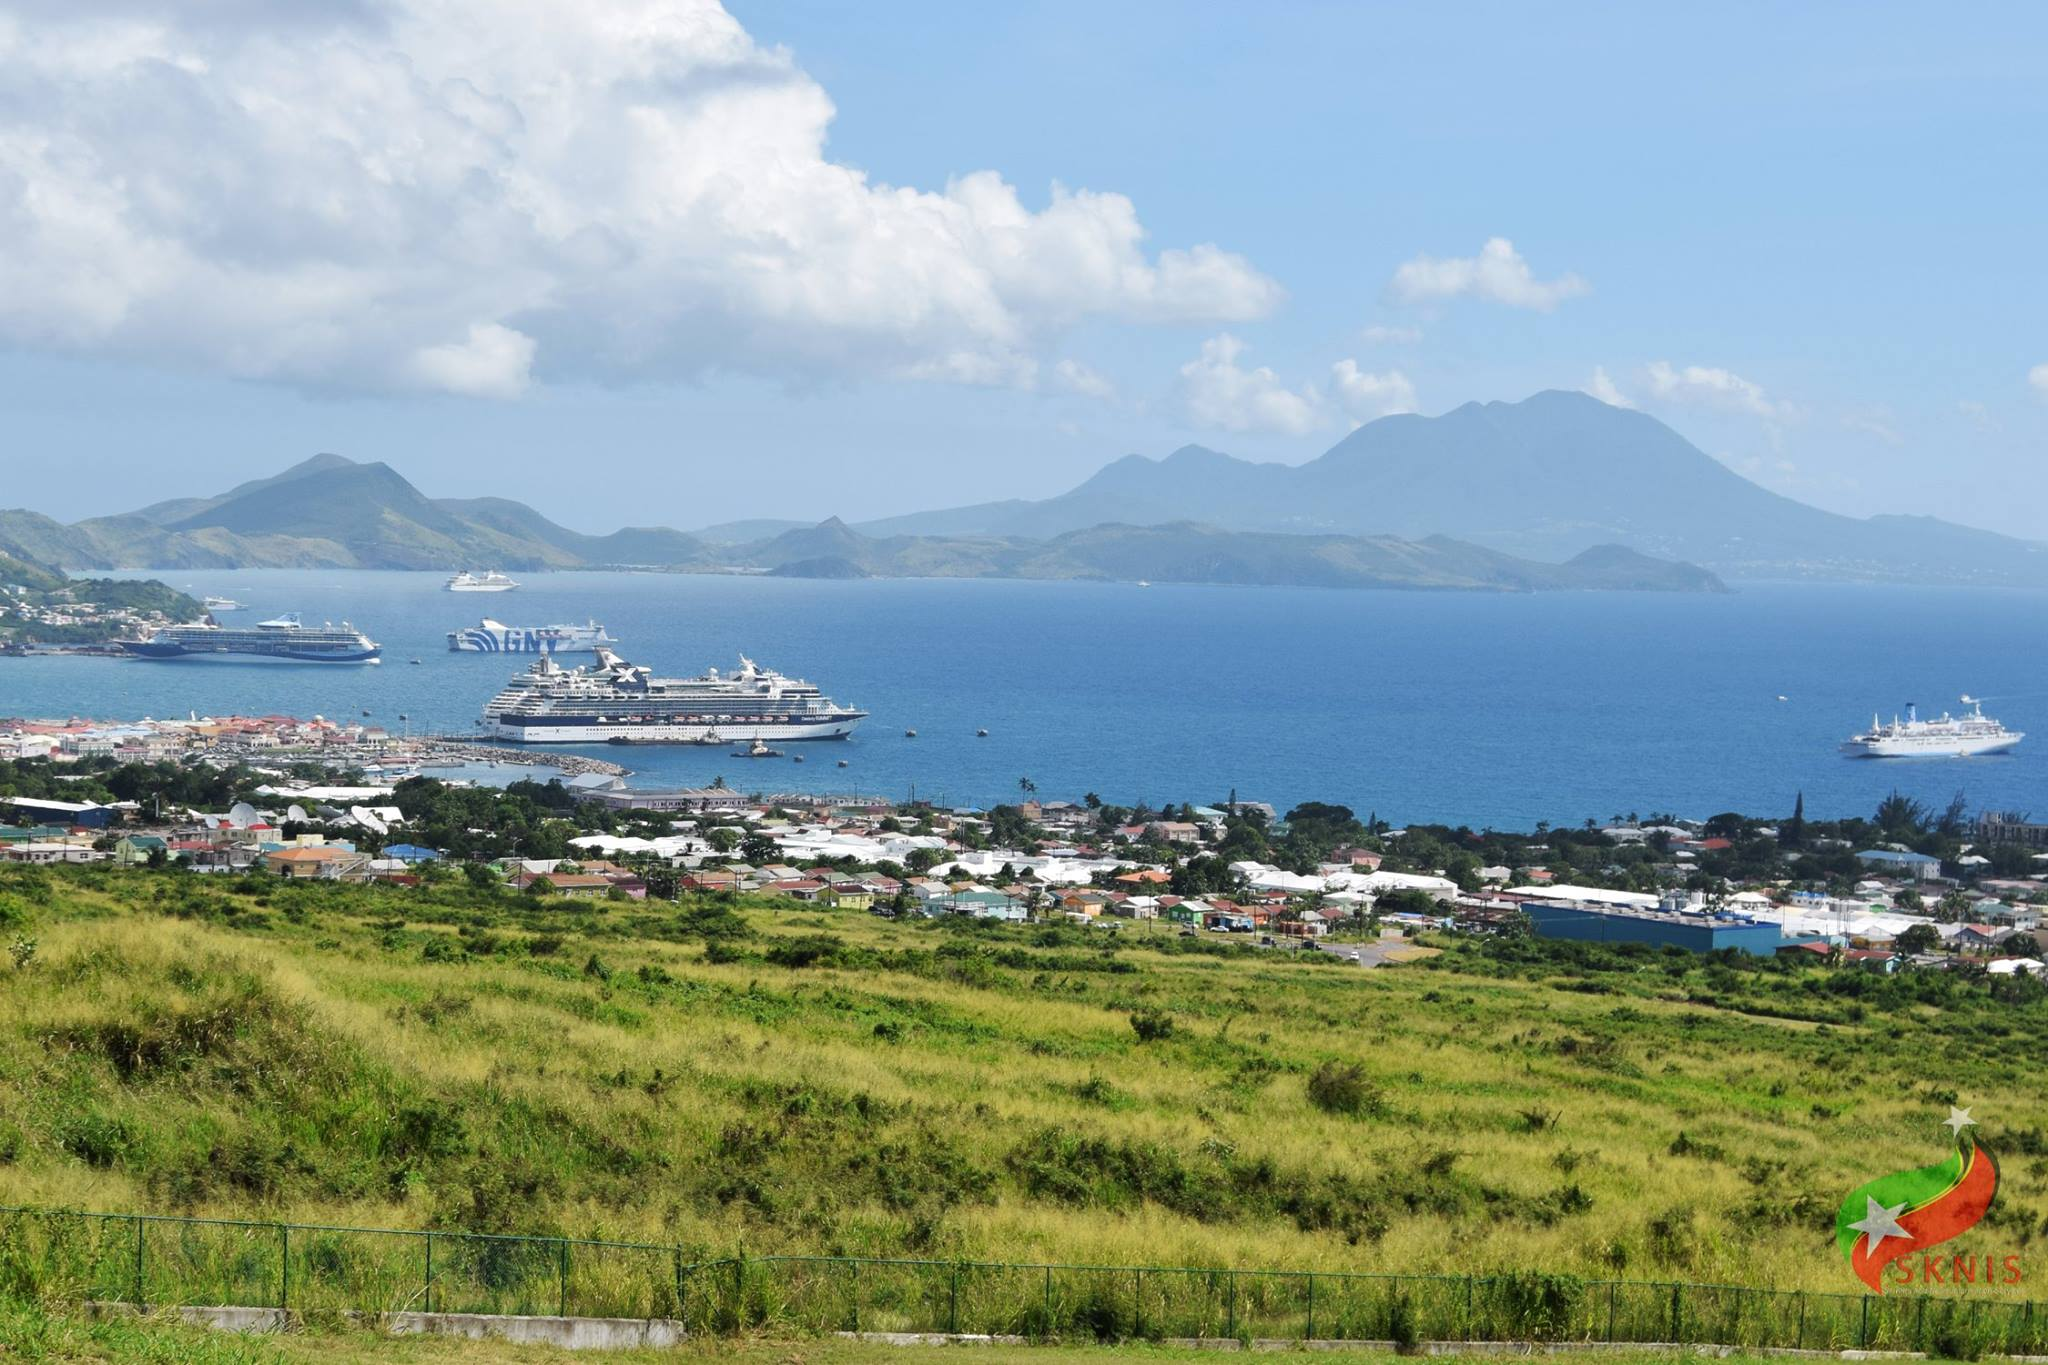 Tourism growth continues in St Kitts  The St Kitts Nevis